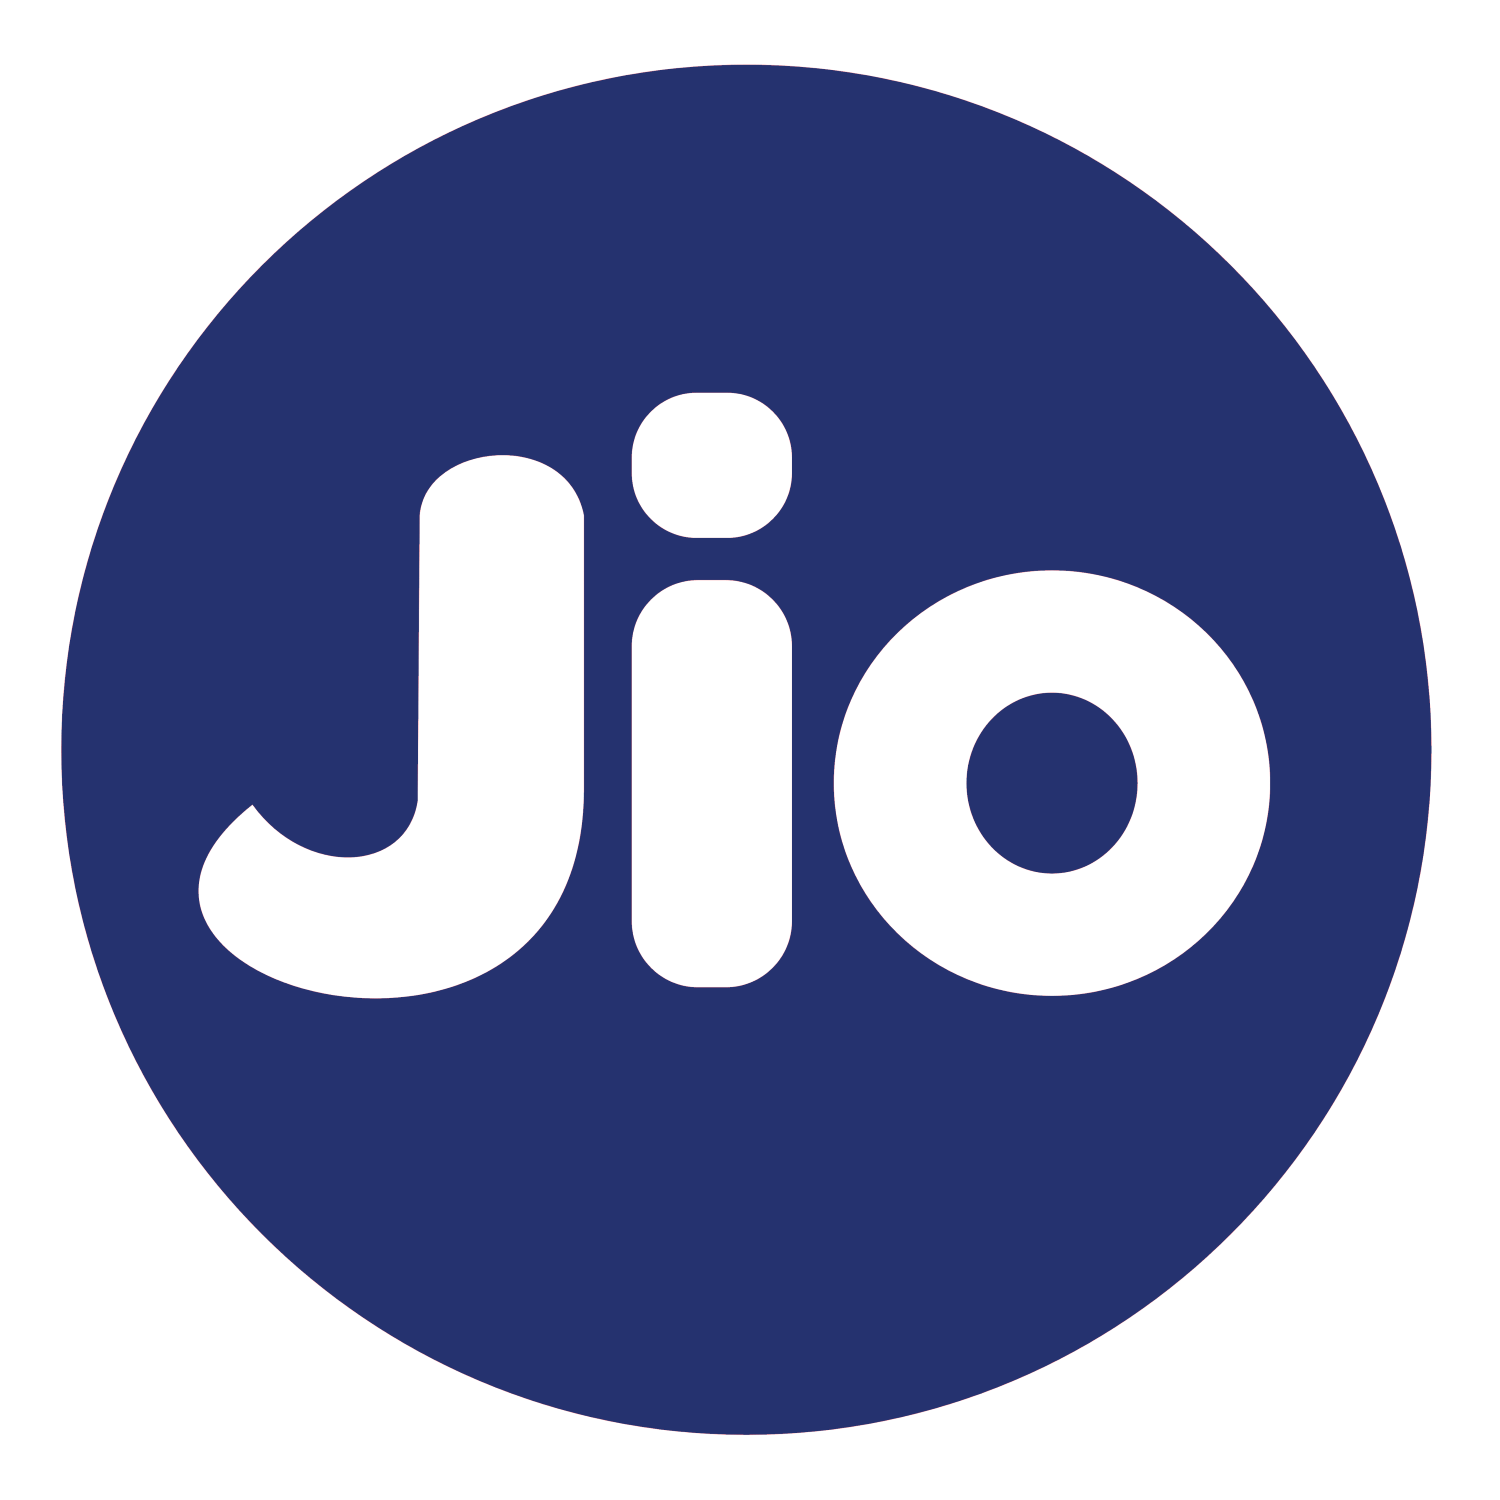 Jio Logo Wallpapers - Wallpaper Cave - Jio Logo PNG